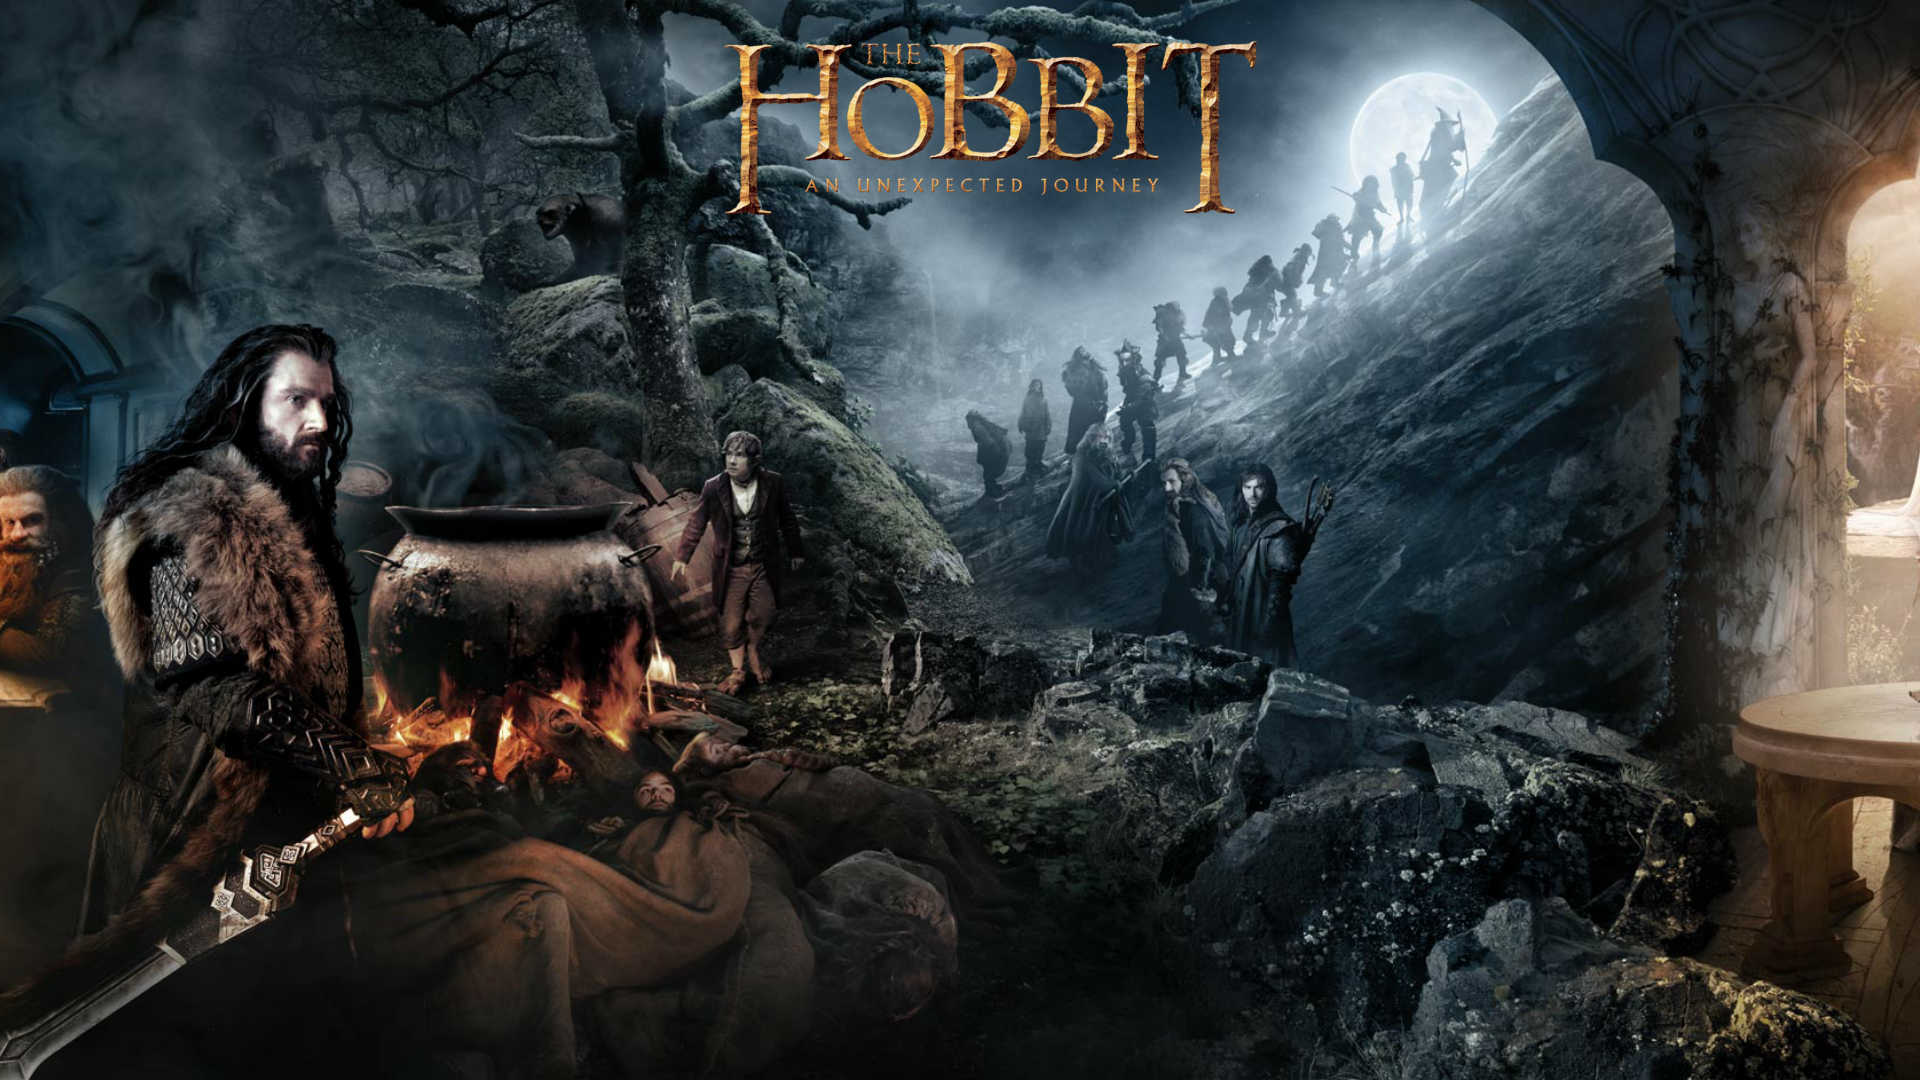 The Hobbit Wallpaper - The Hobbit Wallpaper (33042231) - Fanpop